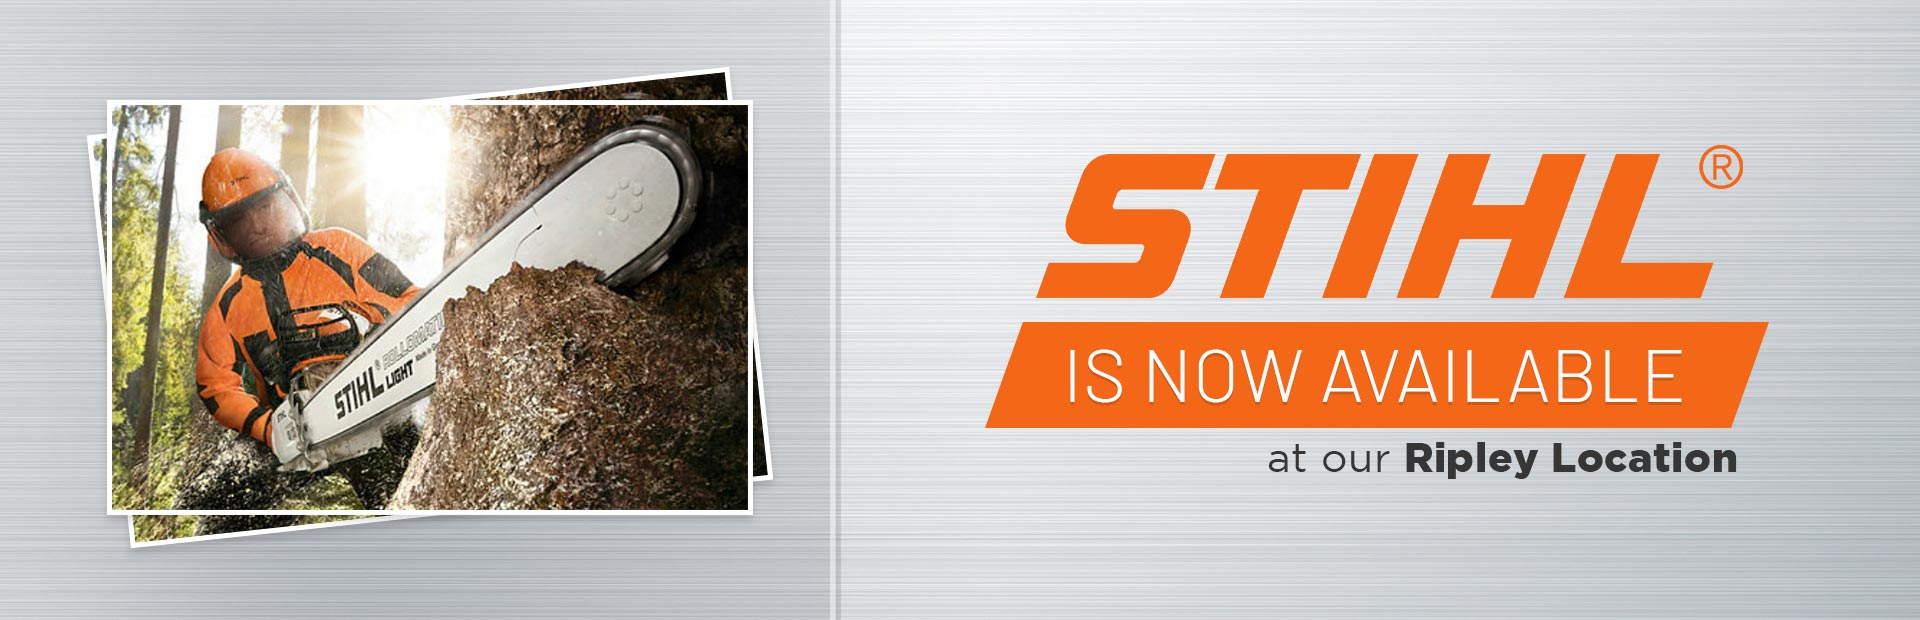 We now carry STIHL products at our Ripley location! Click here to see the models.